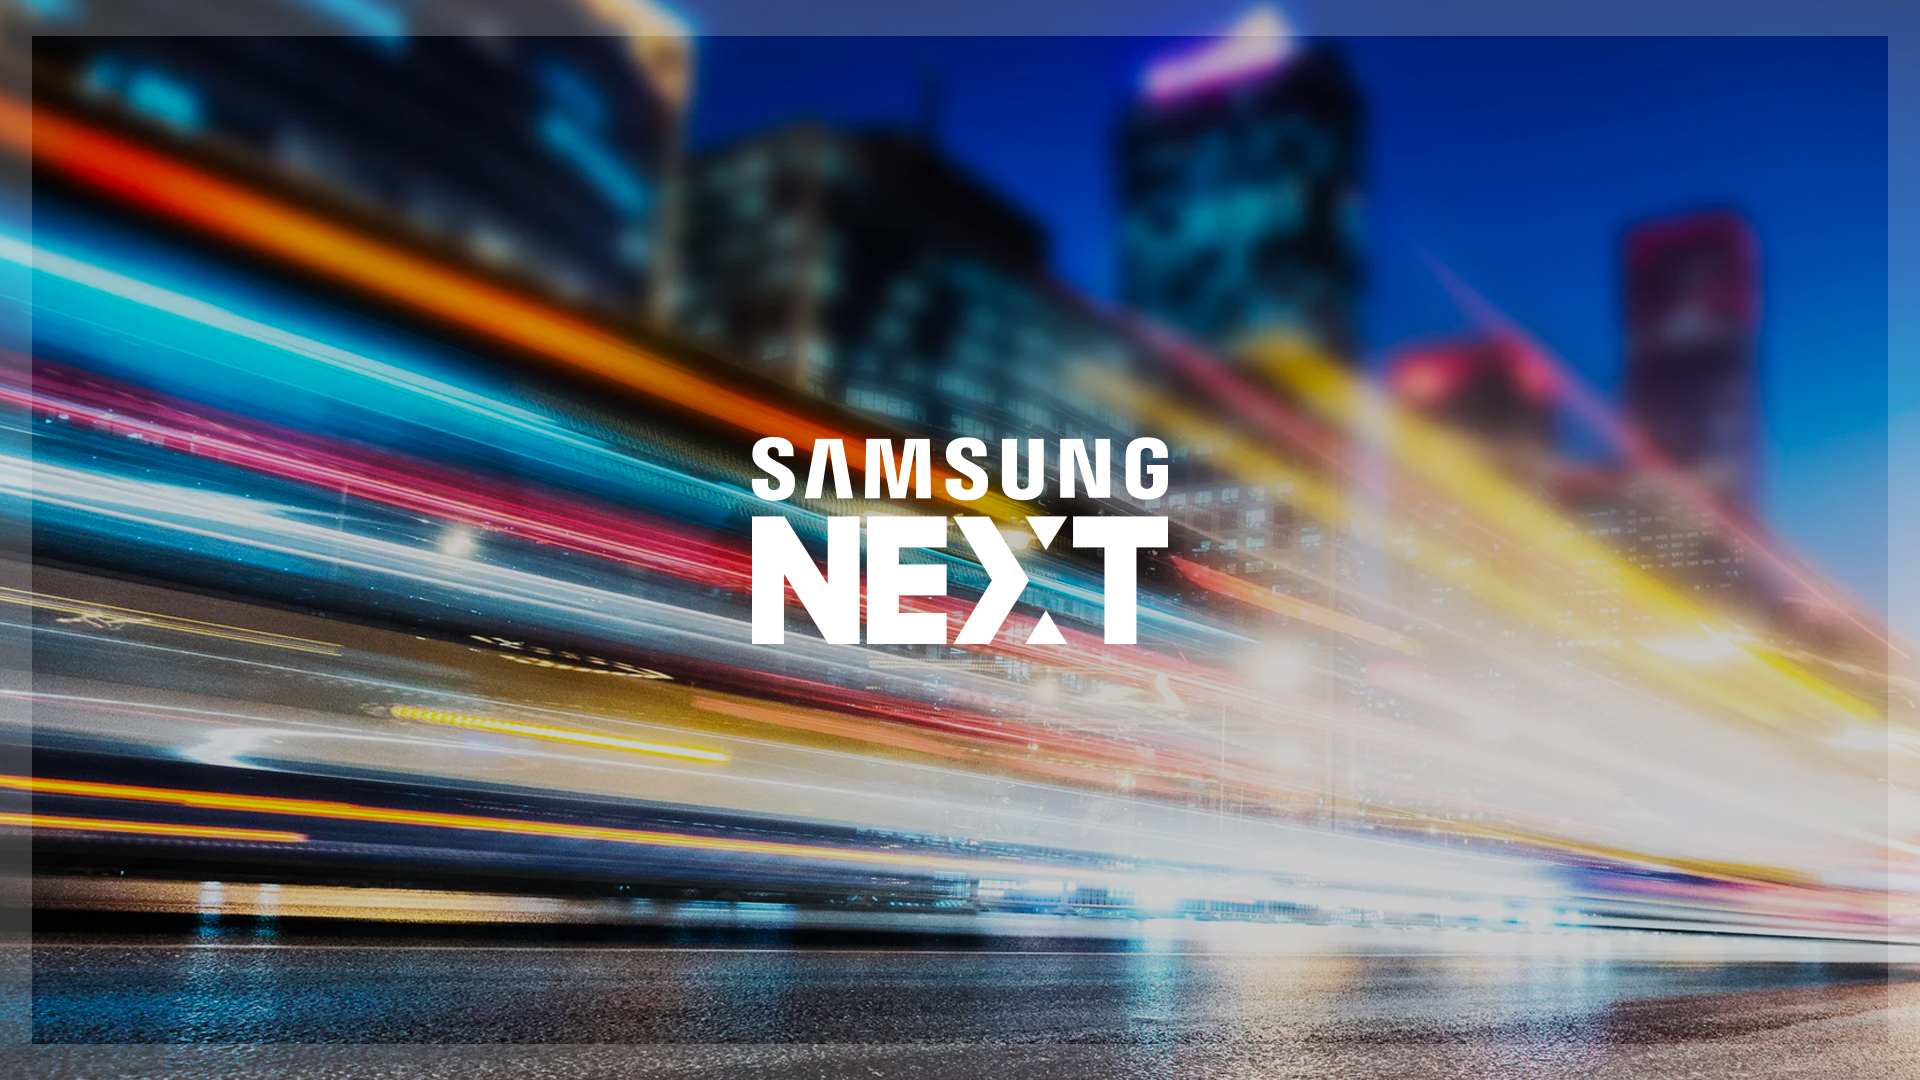 Samsung Next Website Design Preview